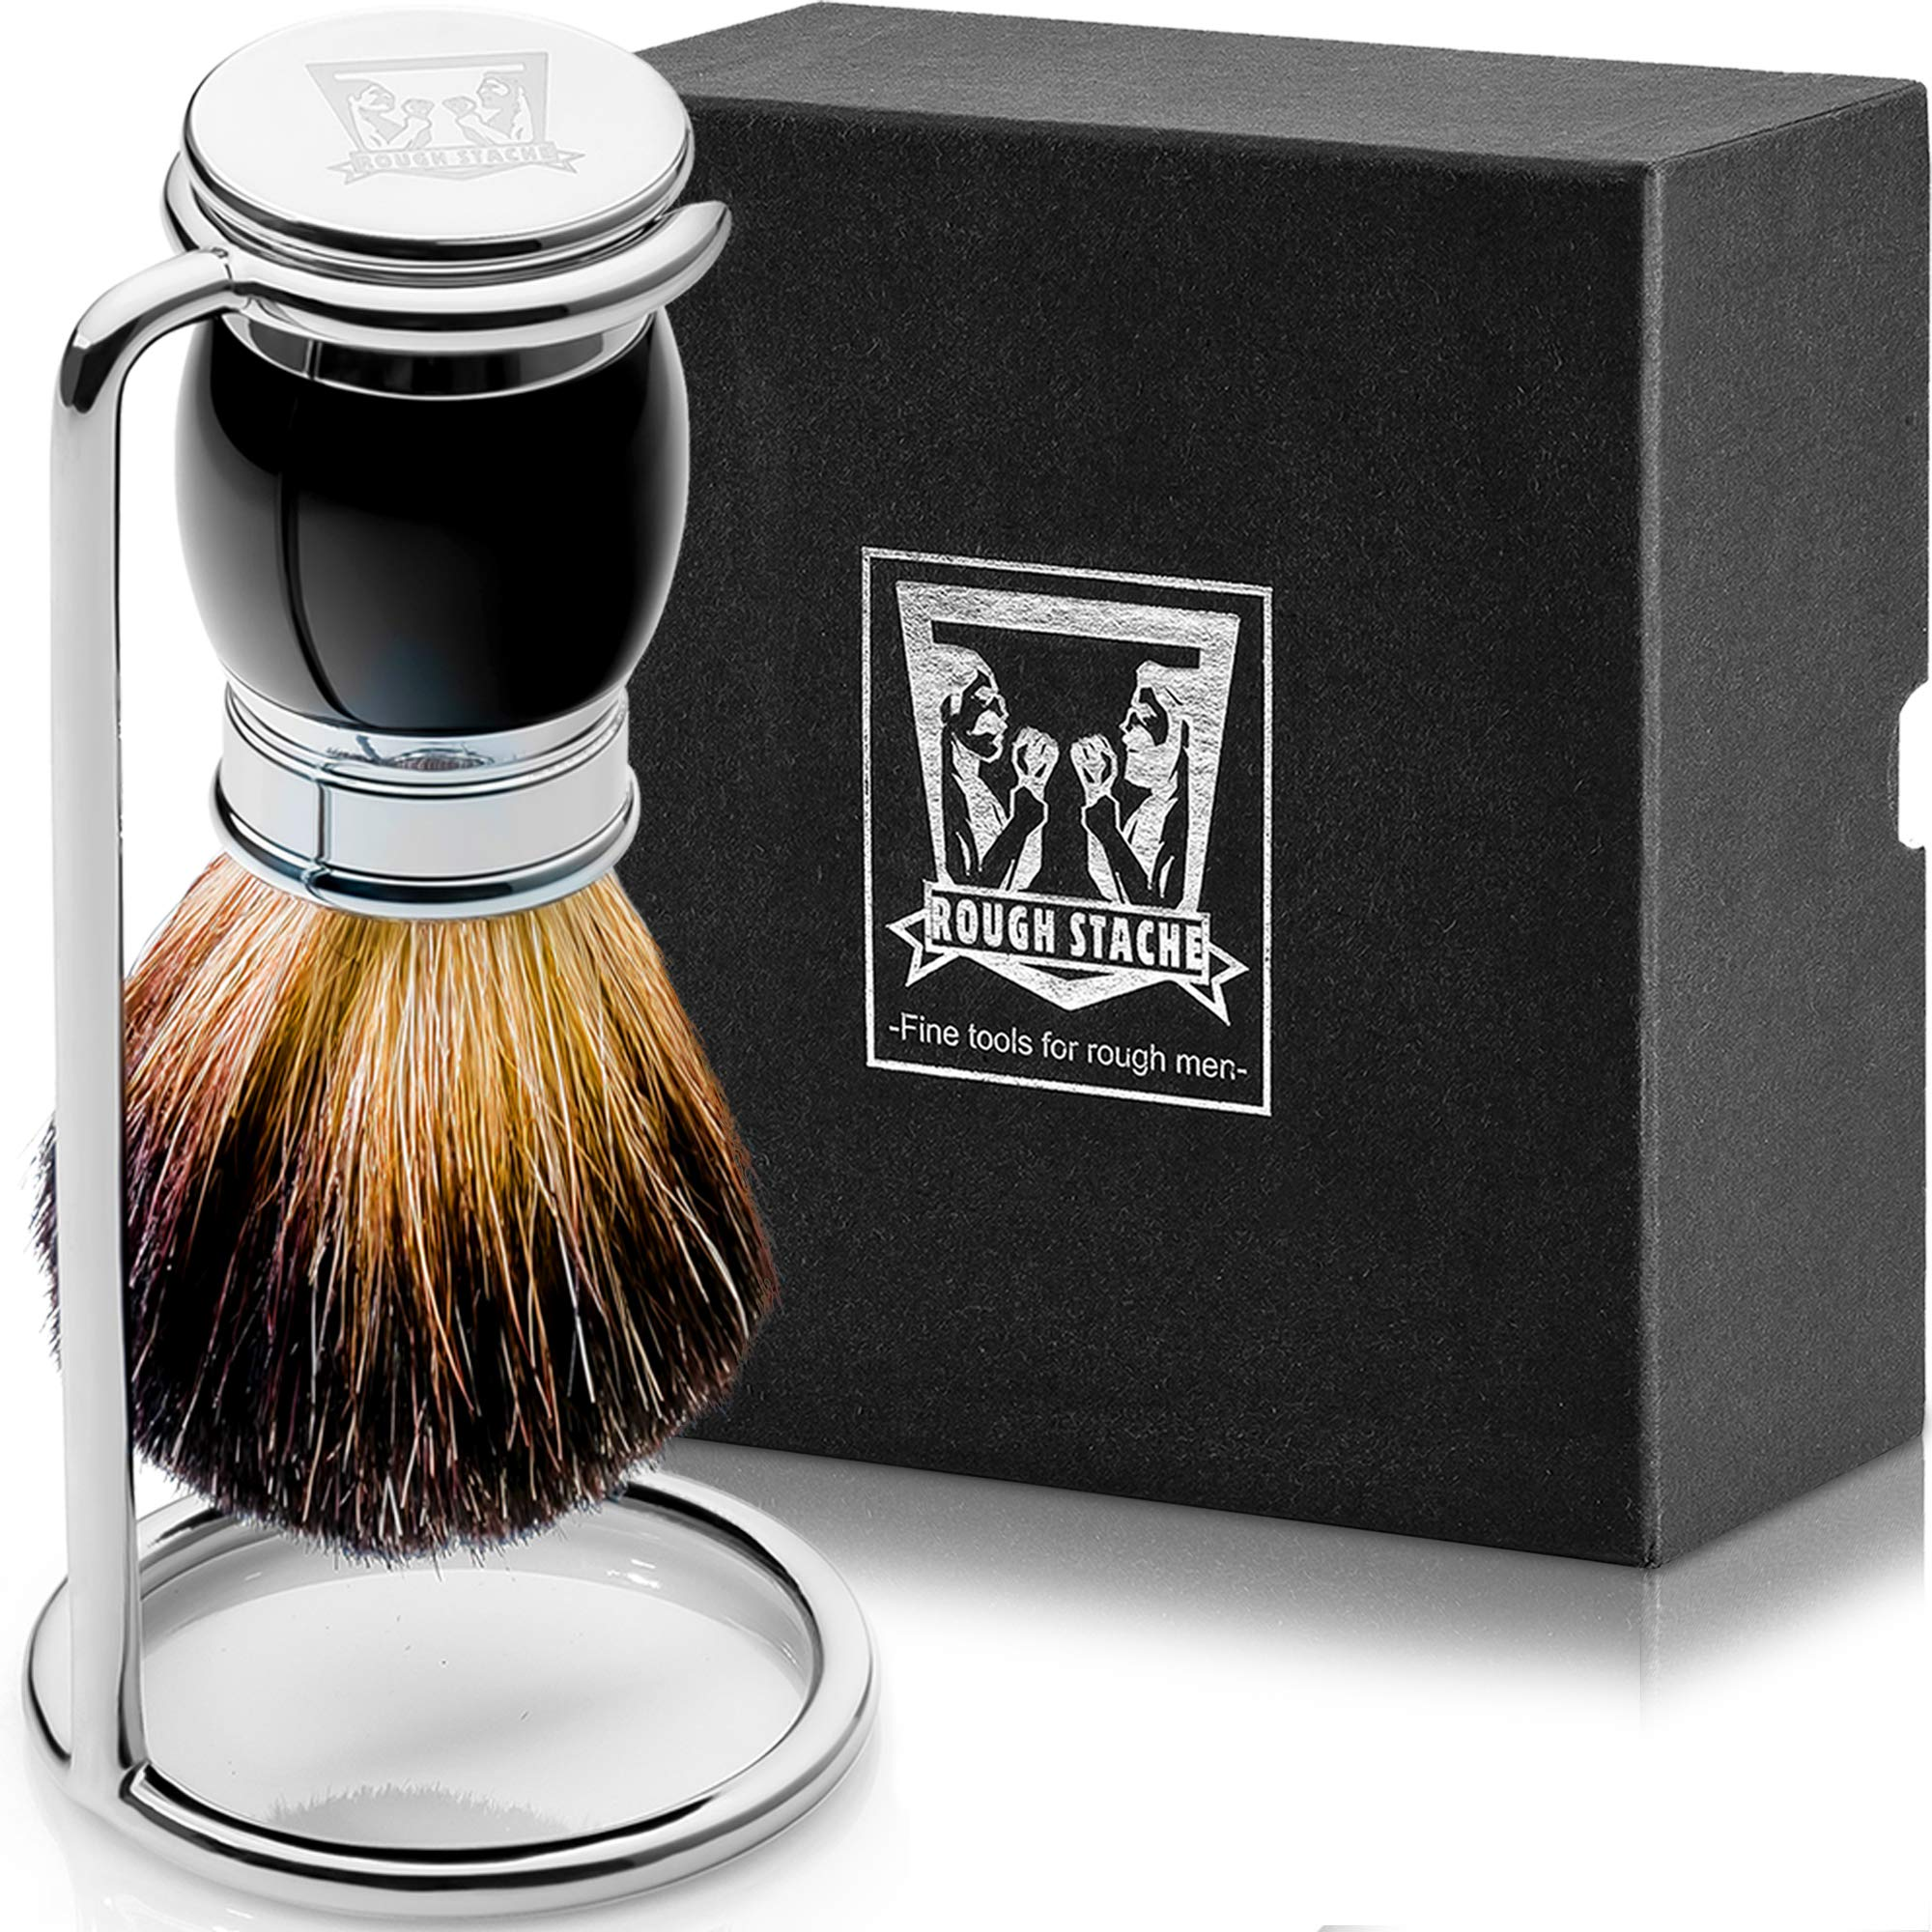 Shaving Brush Set - Professional Shaving Brush with 100% Pure Badger Bristles -Black Resin Handle - Solid Chrome Shaving Brush Stand for Wet Shave - Safety Razor by ROUGH STACHE